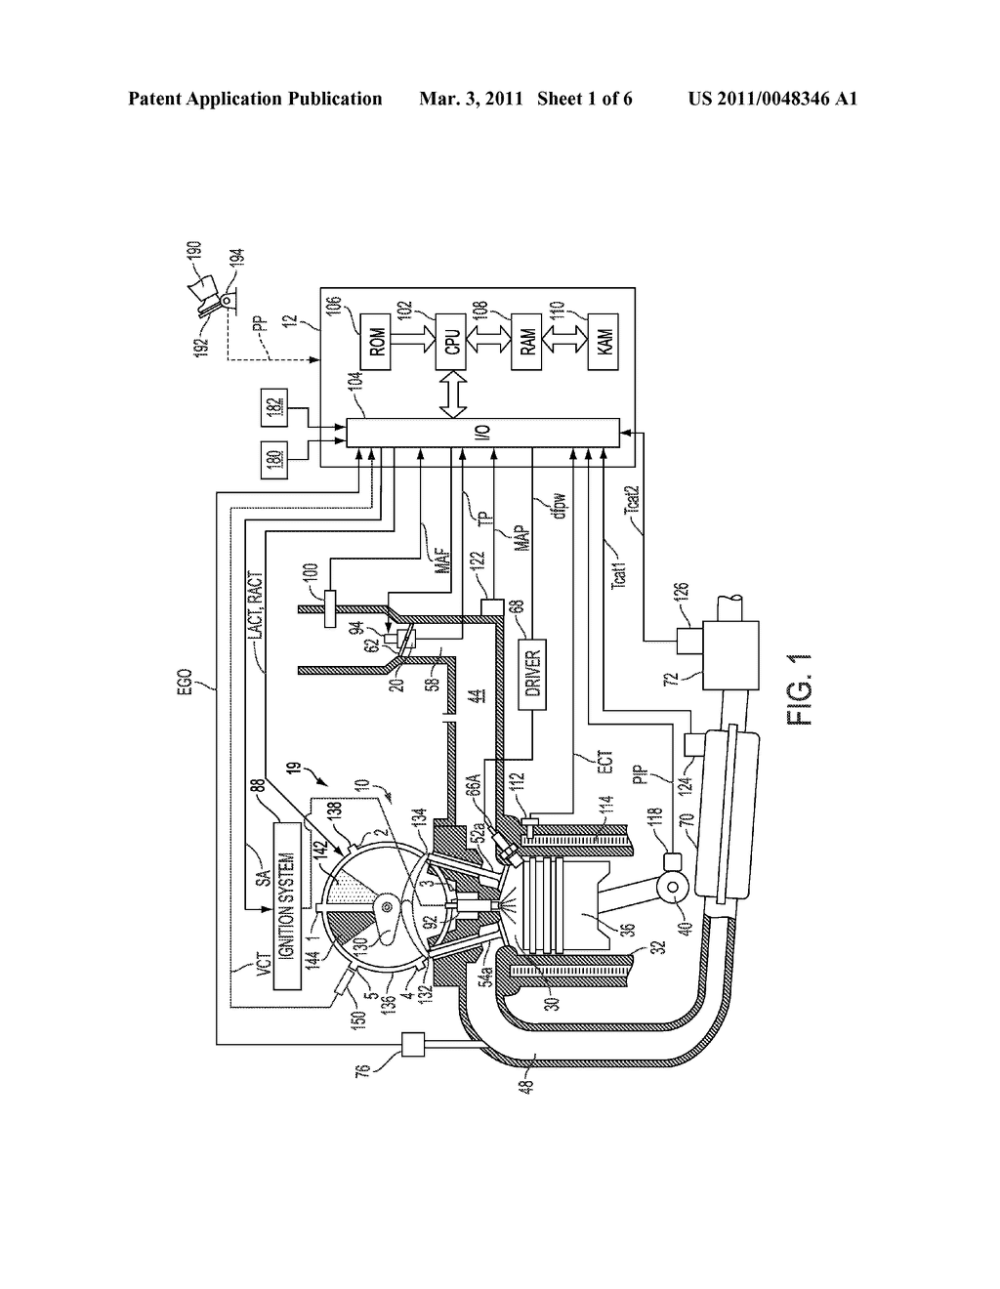 medium resolution of engine with hydraulic variable valve timing diagram schematic and image 02